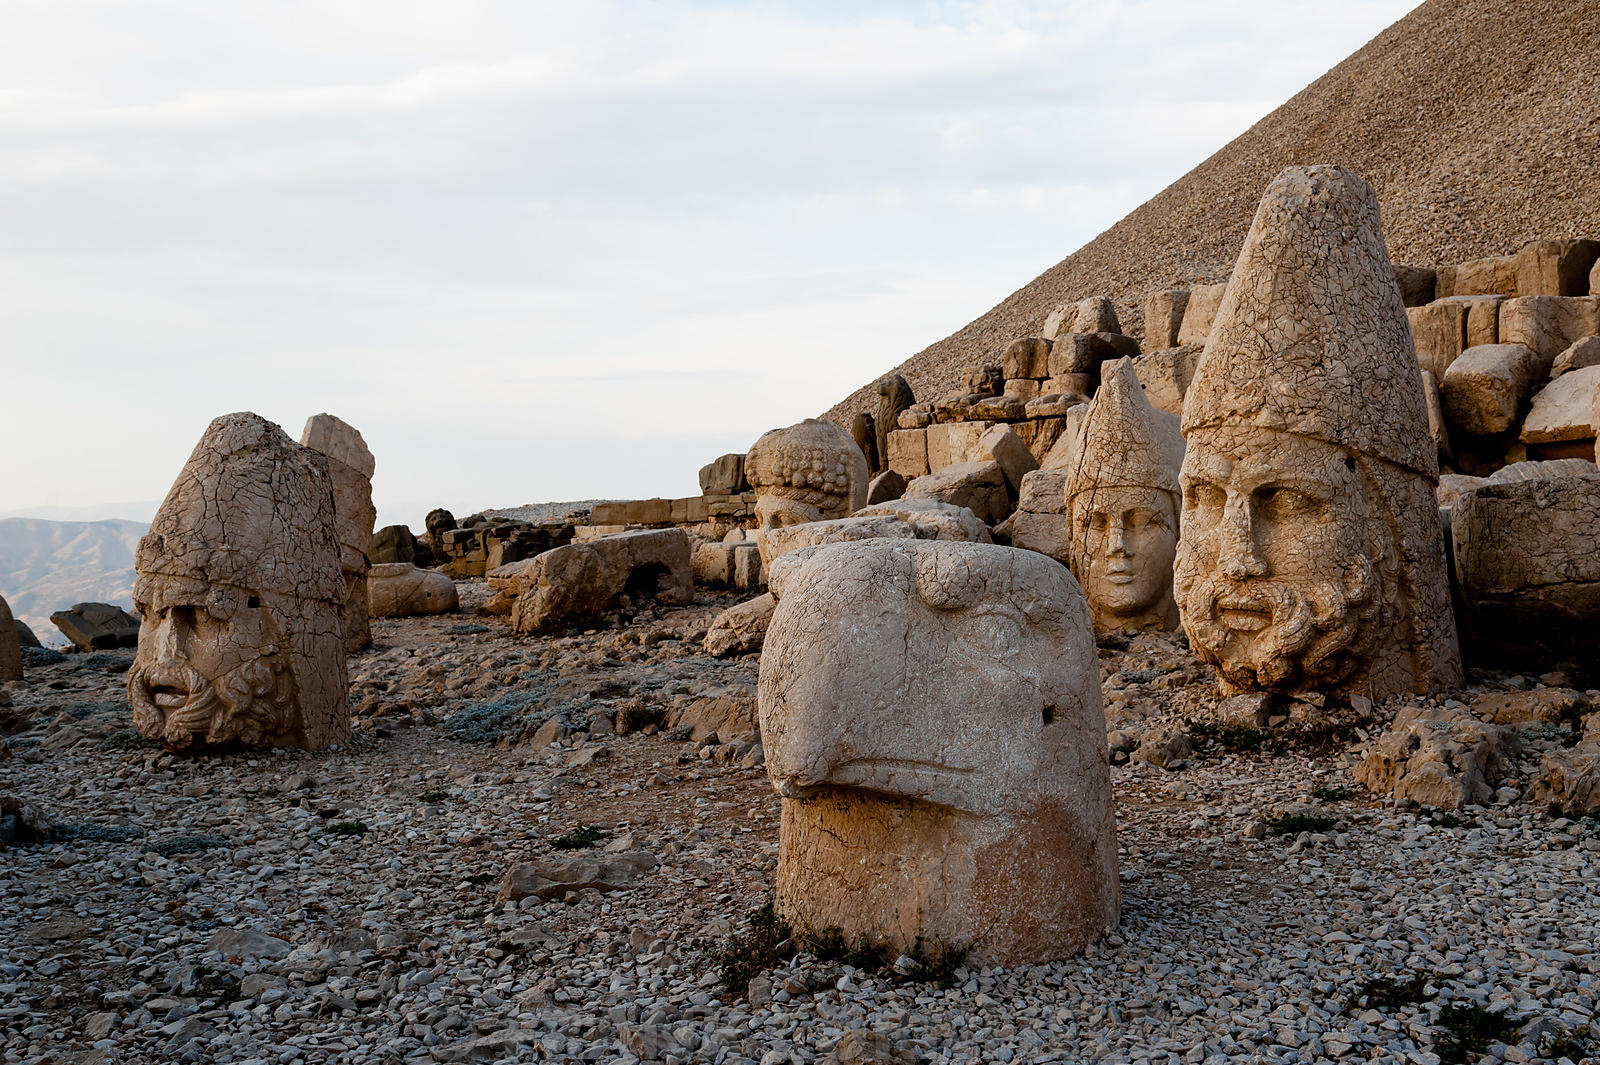 The west terrace of Mount Nemrut with heads of the colossal statues and the tumulus.  Heads of Zeus-Oromasdes, Commagene, Apo...